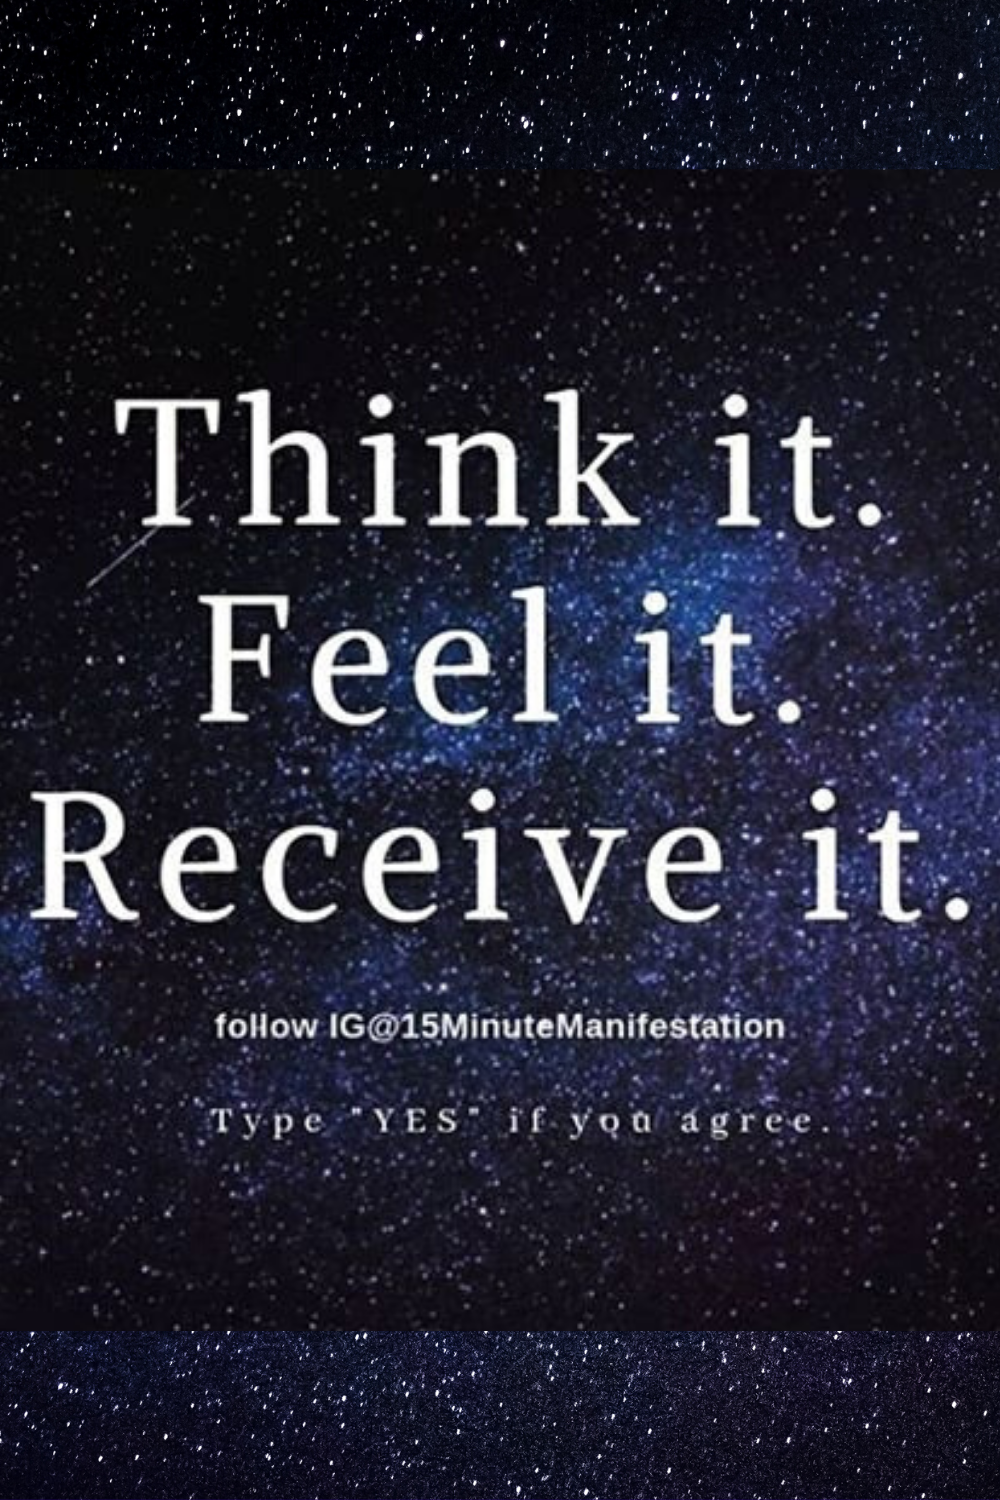 Law Of Attraction Affirmation And Quotes Law Of Attraction Affirmations Affirmations Wealth Affirmations